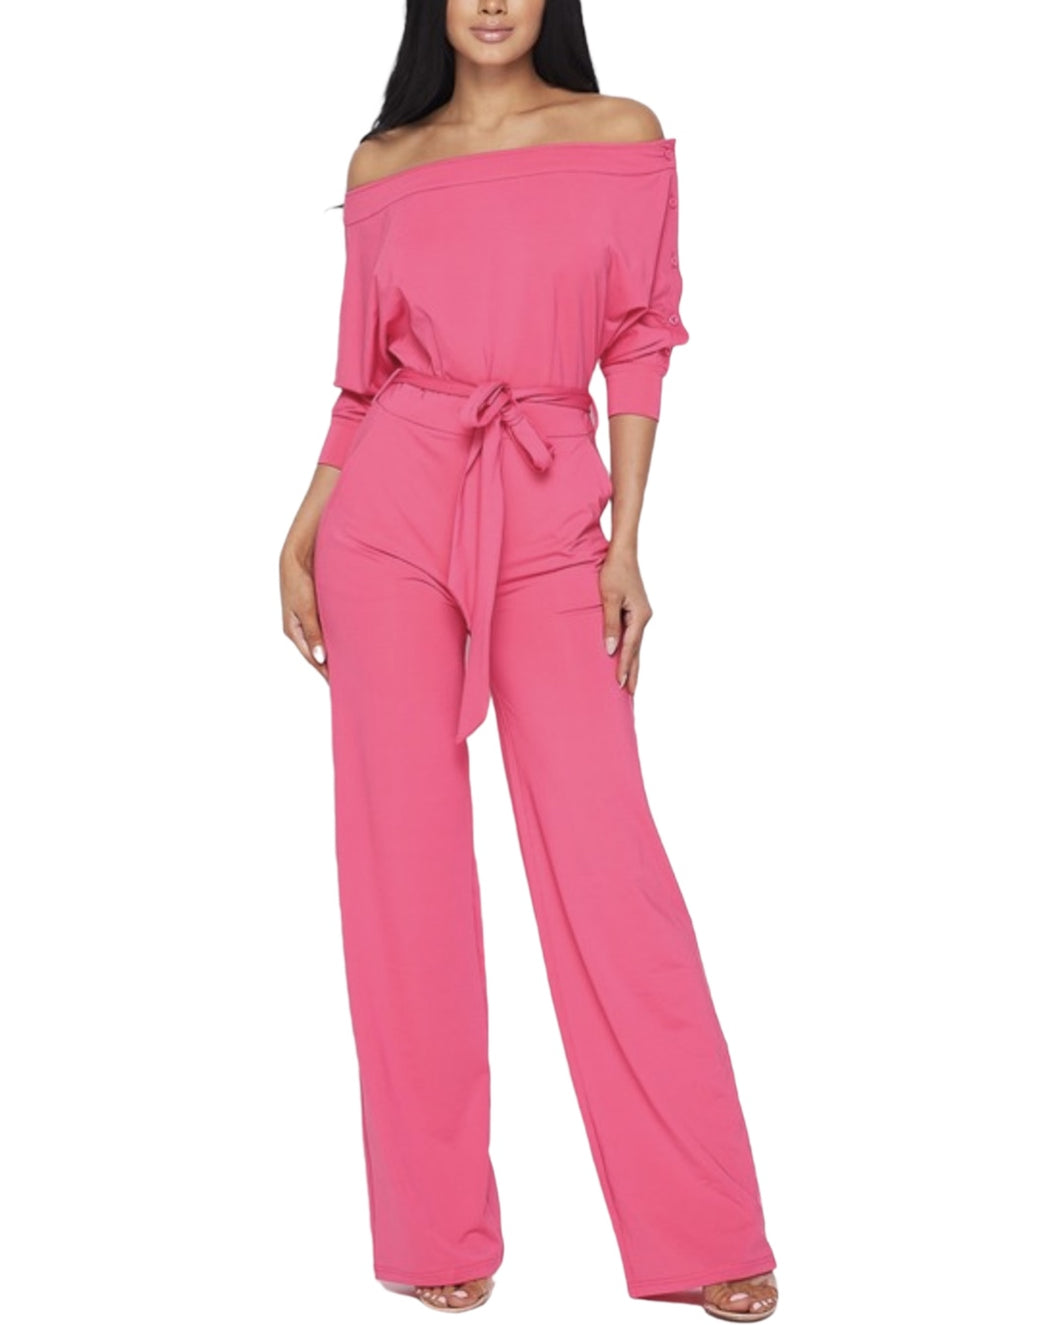 BARBIE PINK JUMPSUIT